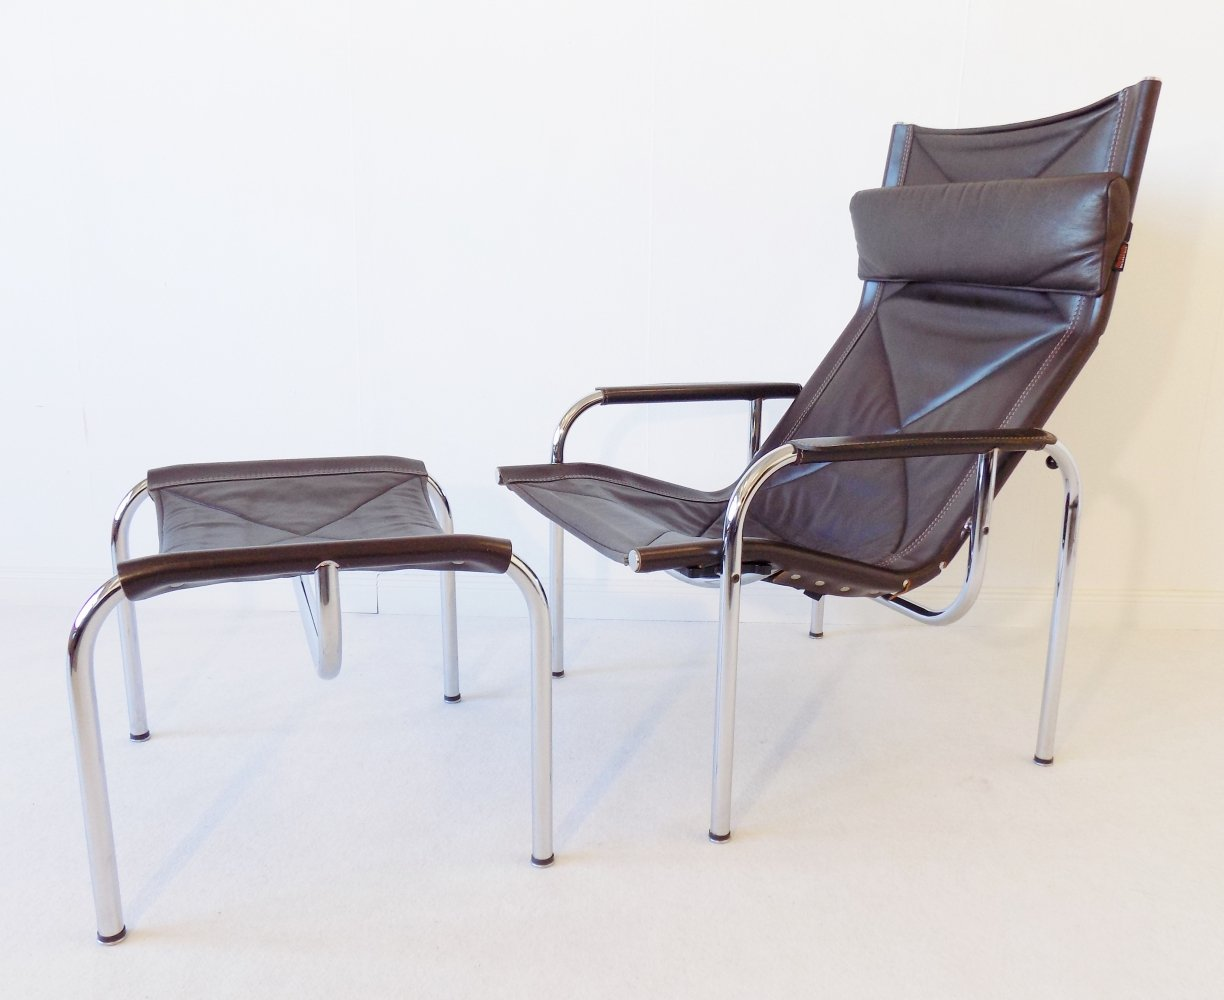 Strässle HE1106 Lounge Chair with ottoman by Hans Eichenberger